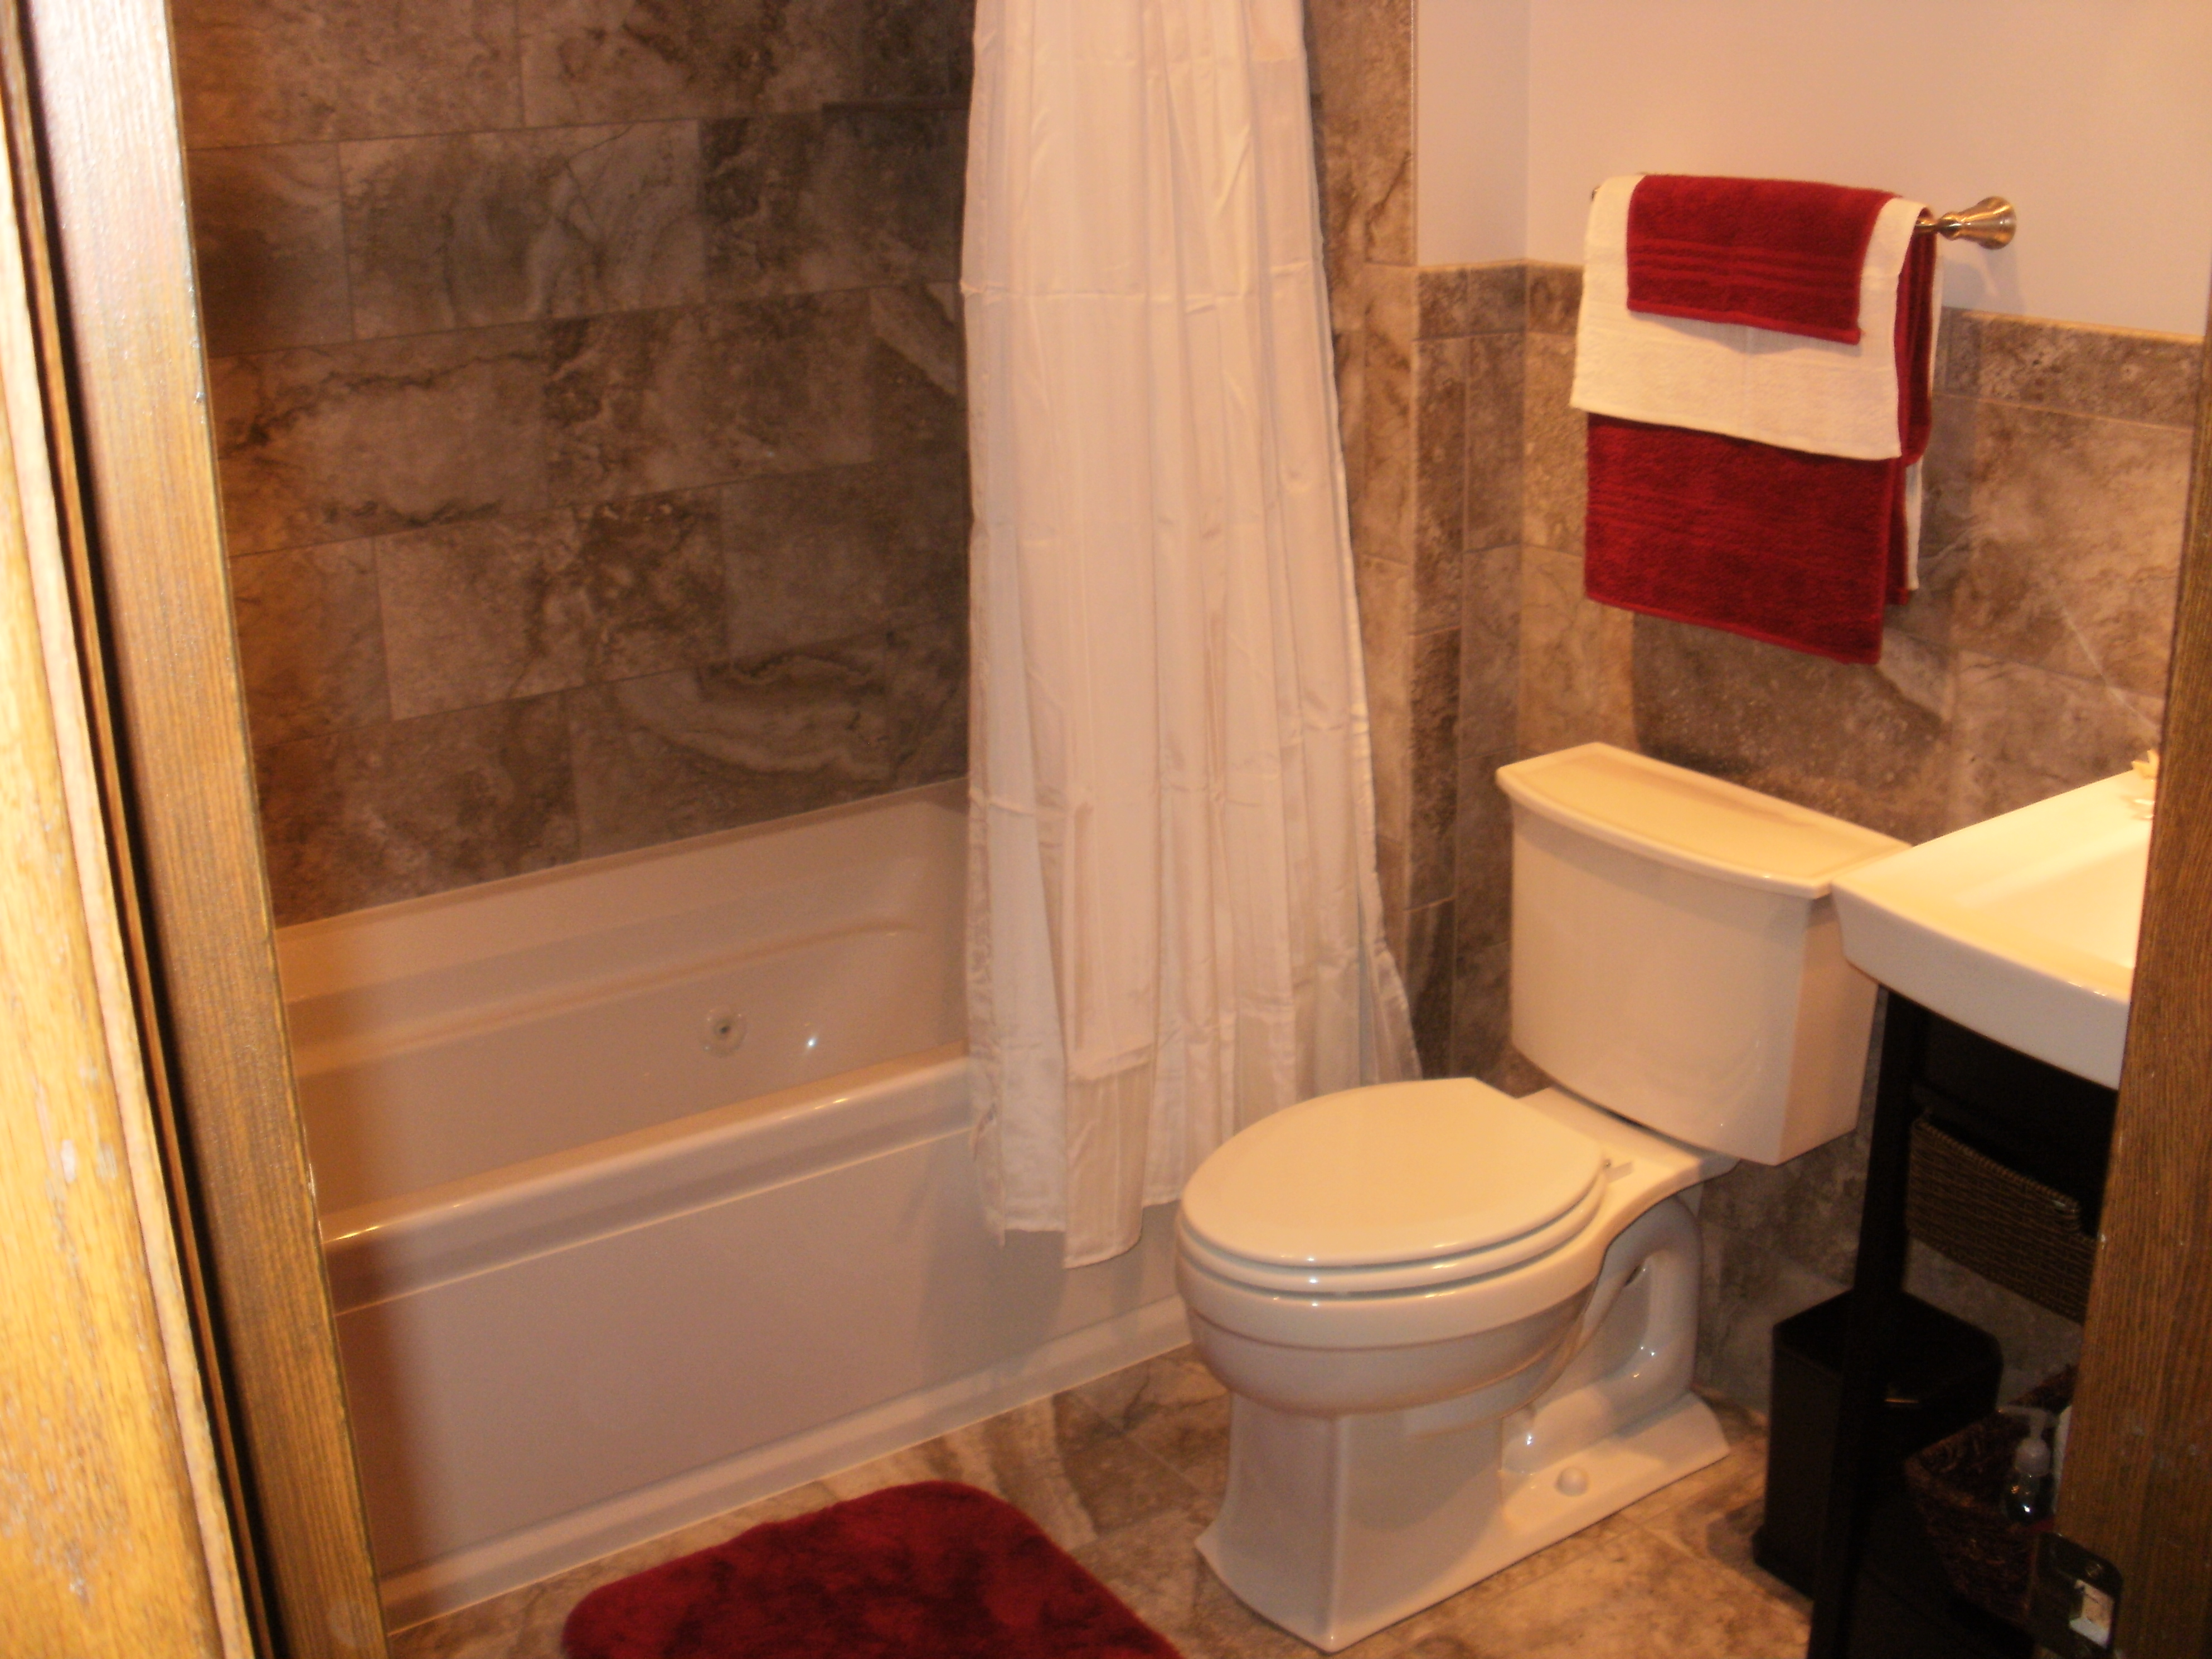 Inver Grove Heights Bathroom Remodel with Whirlpool Tub